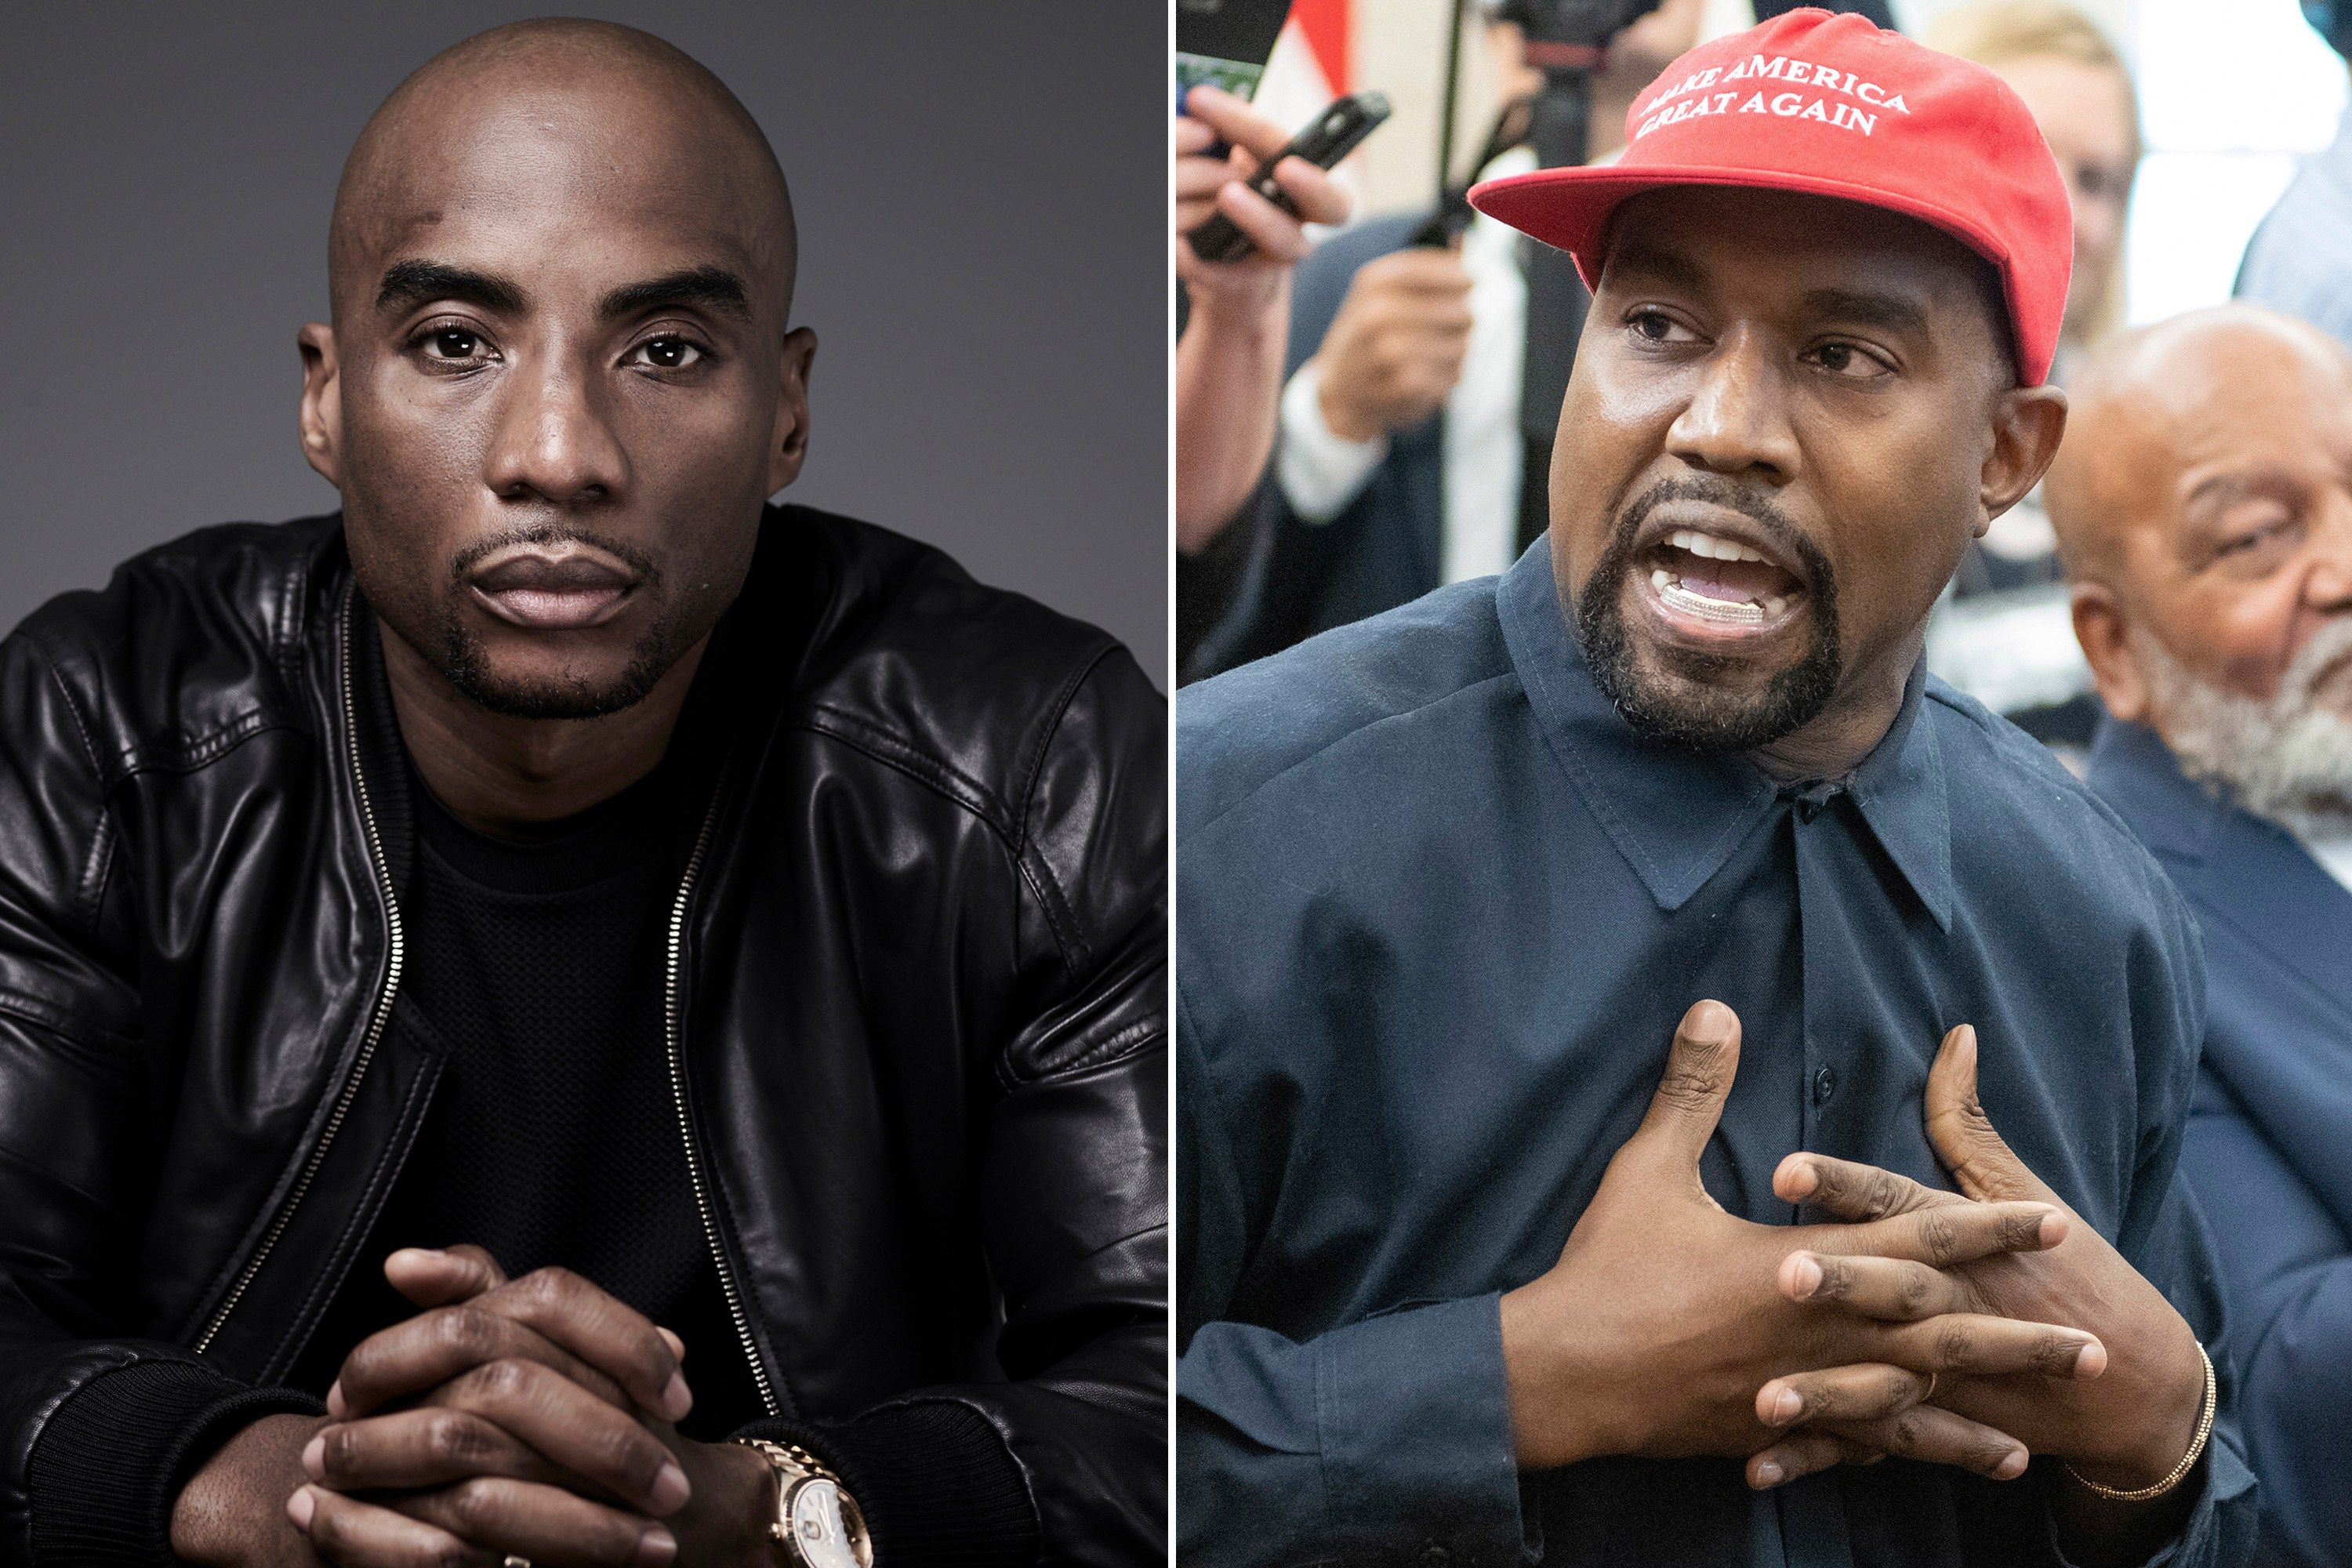 Charlamagne Tha God Leave Kanye West Alone Charlamagne Tha God Kanye West Kanye